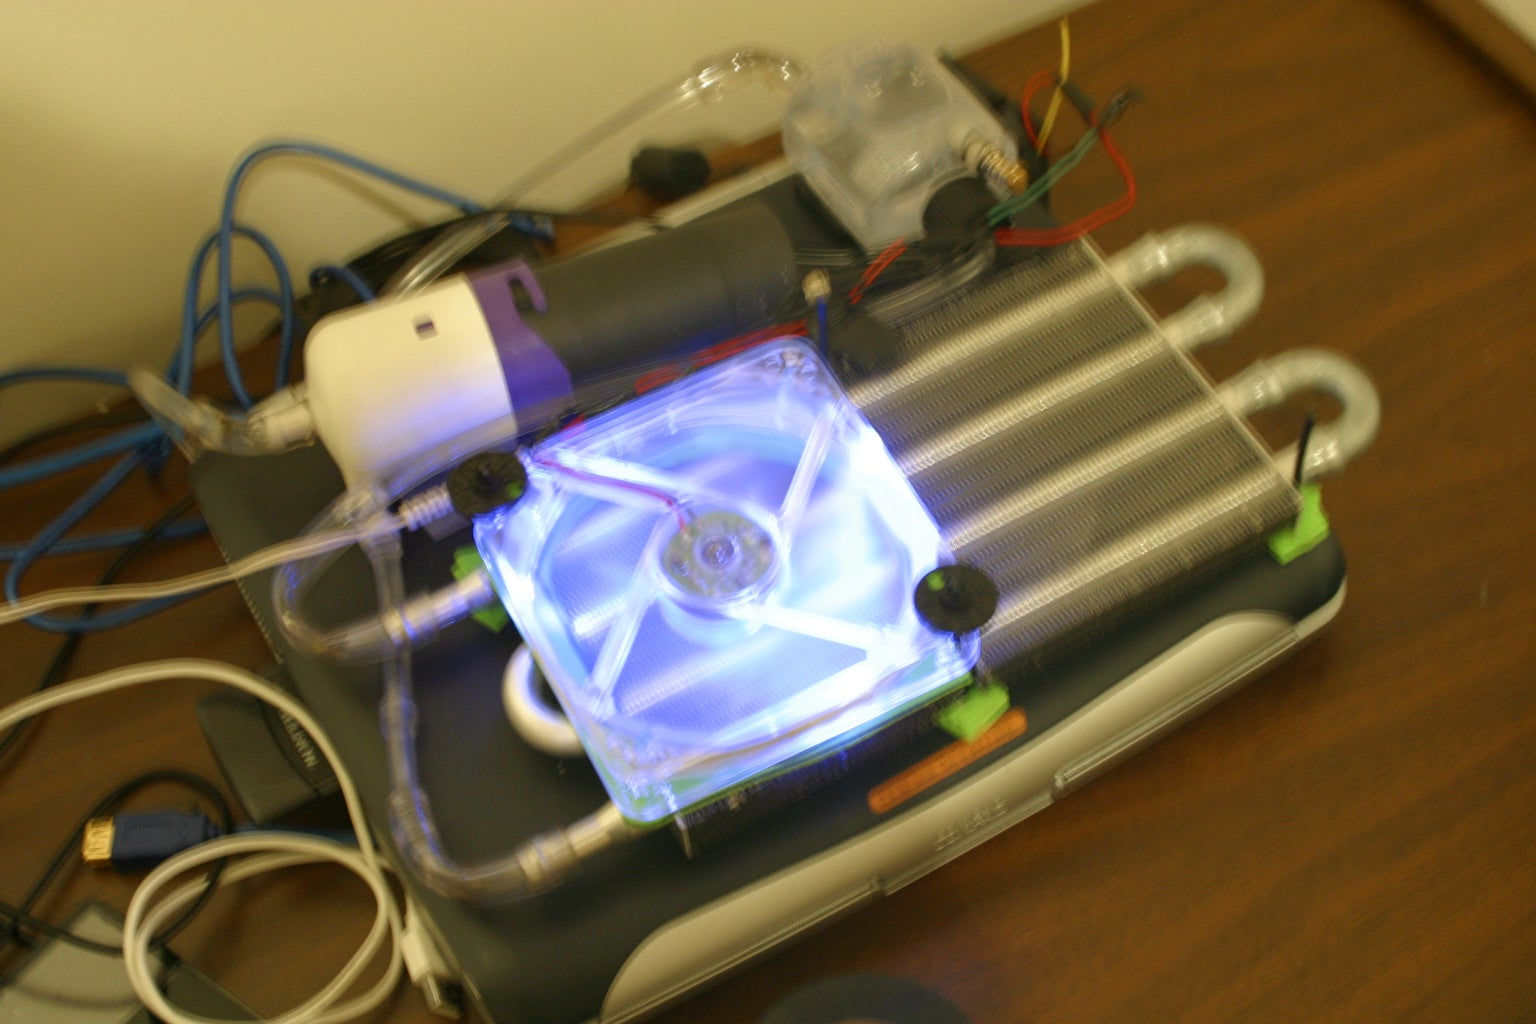 Watercooling a Laptop on the Cheap